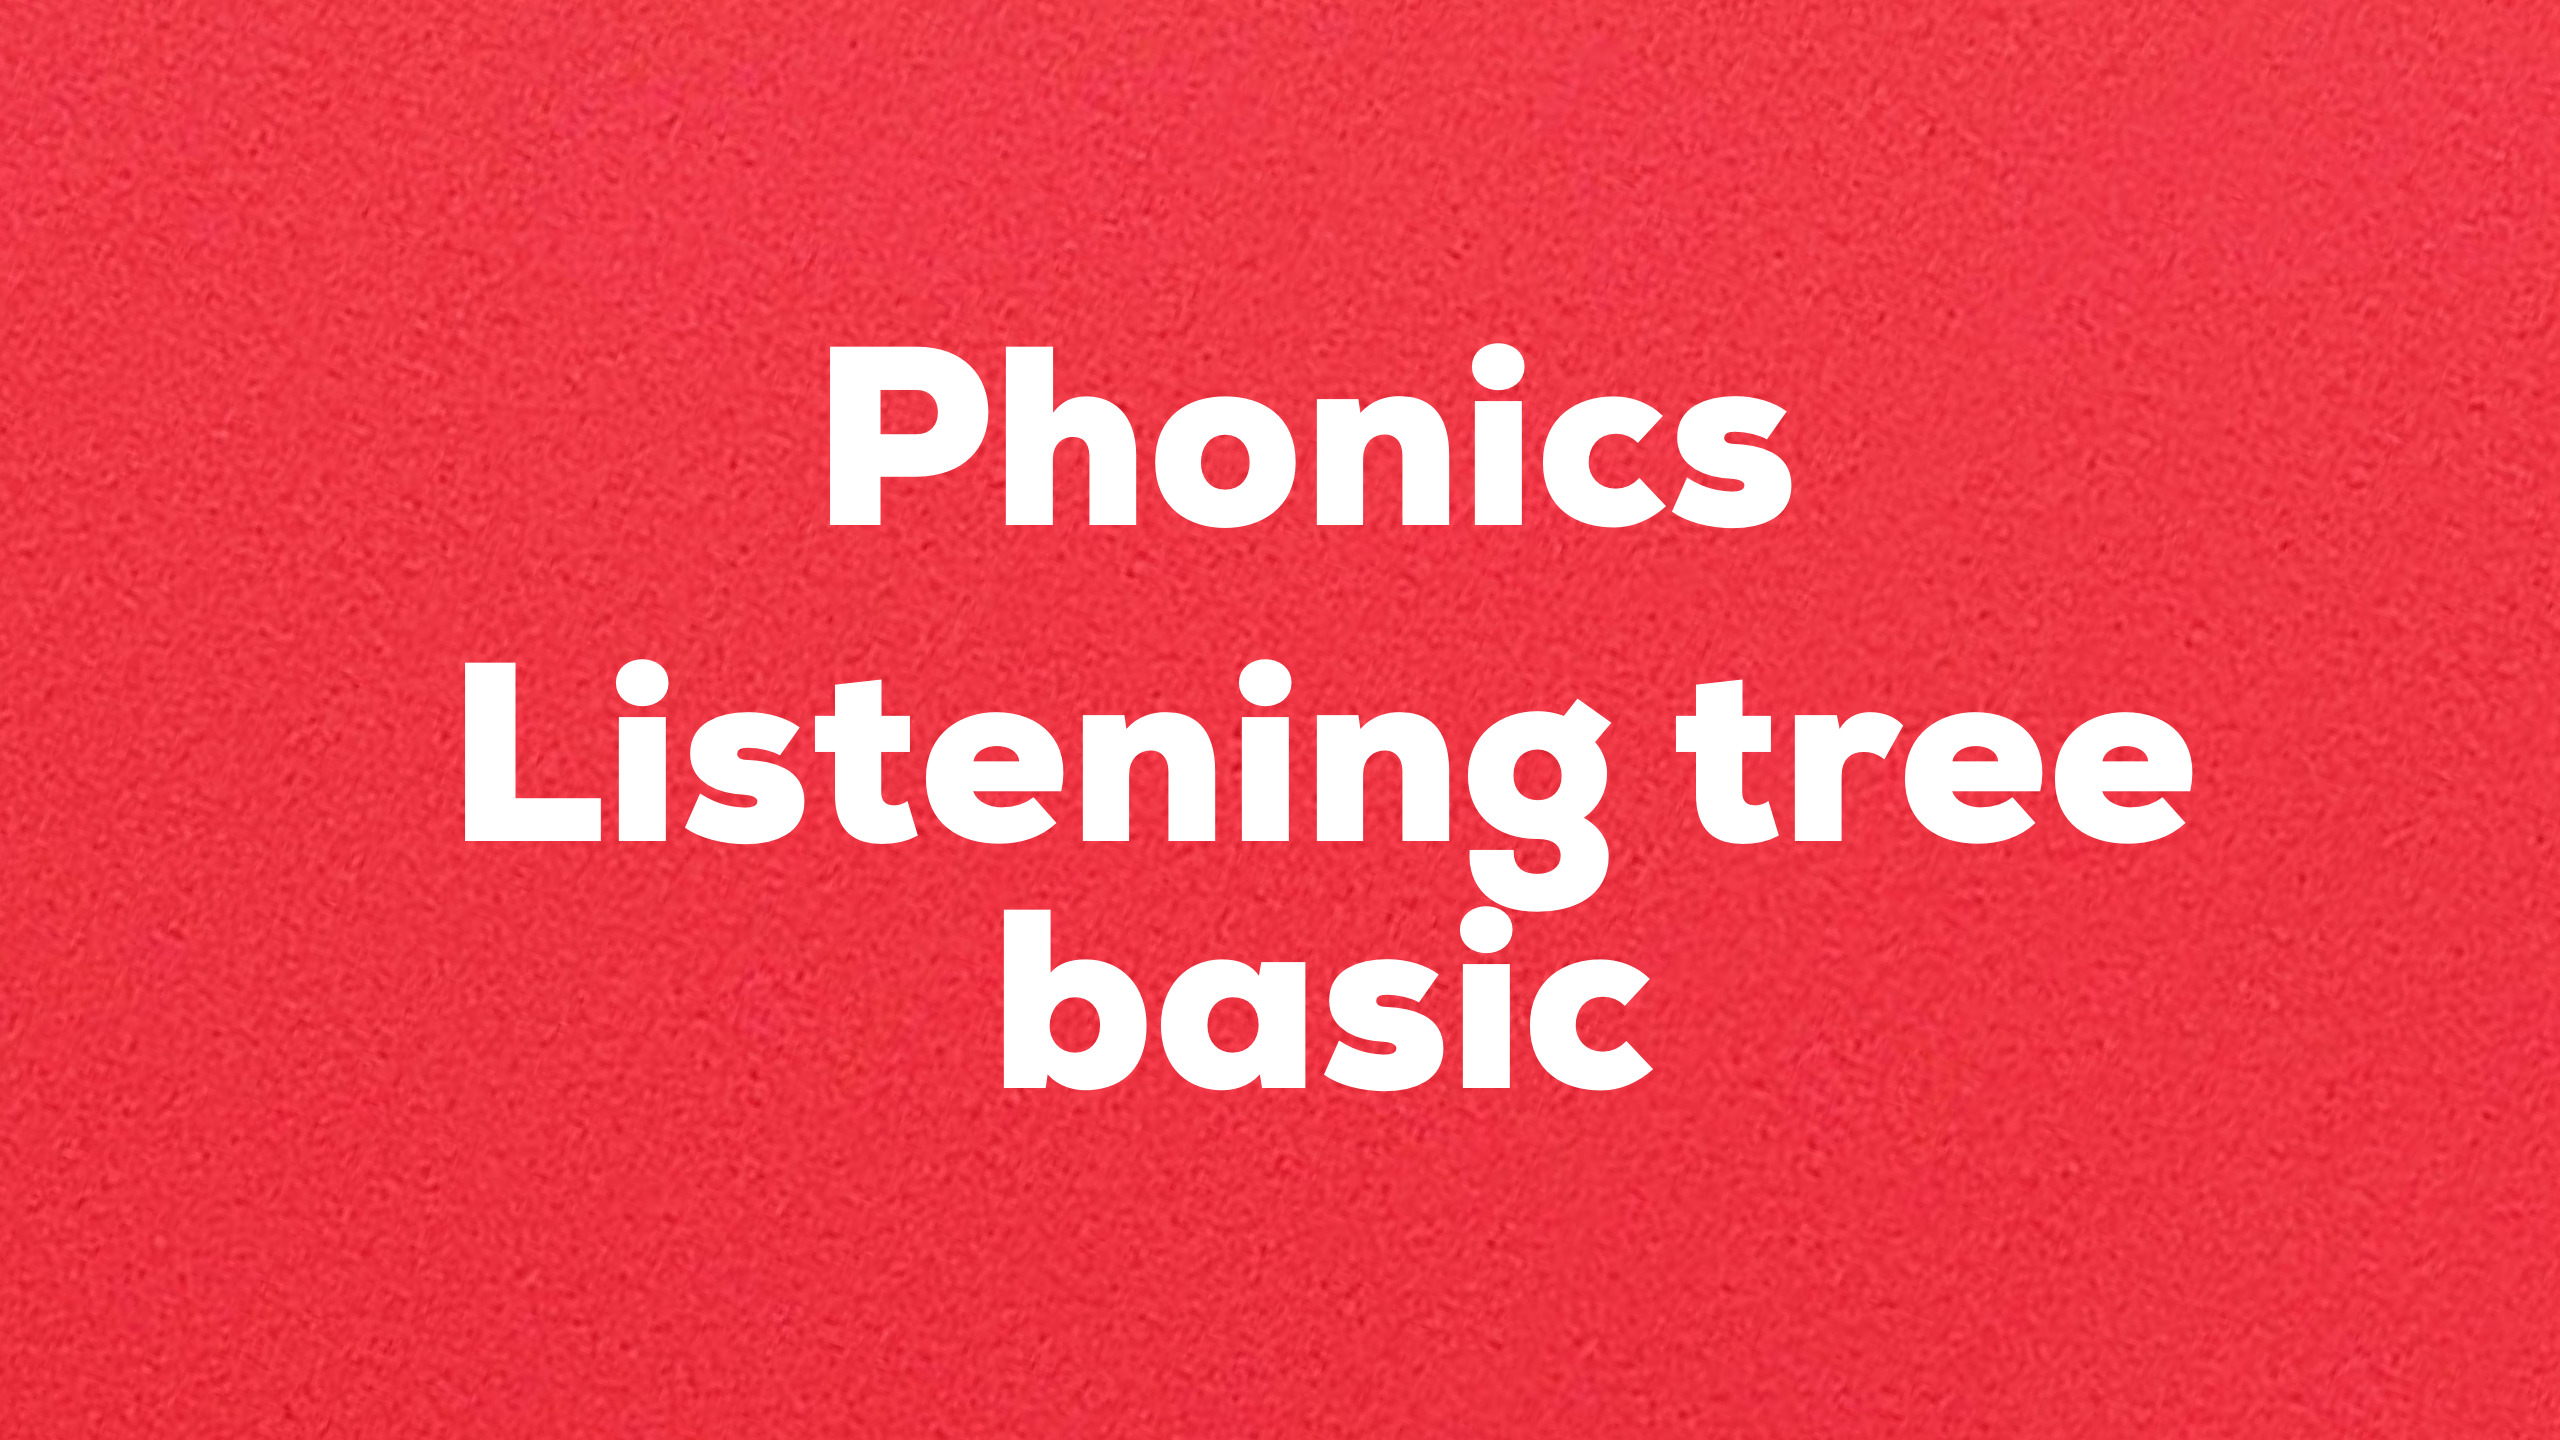 Phonics Listening tree basic 難易度☆☆☆